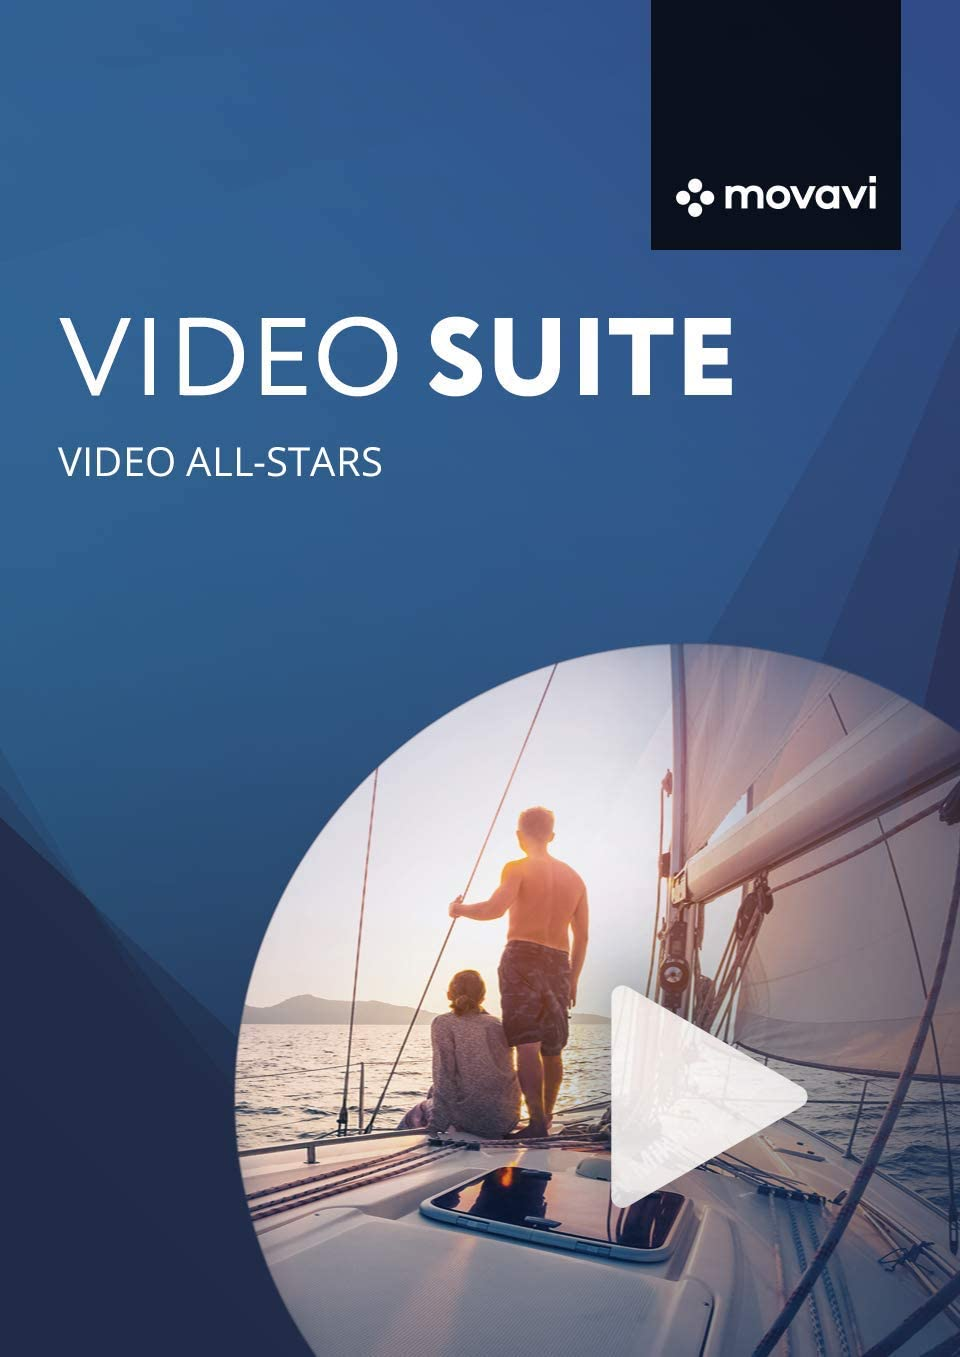 Movavi Video Suite 2020 Personal PC Download Brand Max 80% OFF new